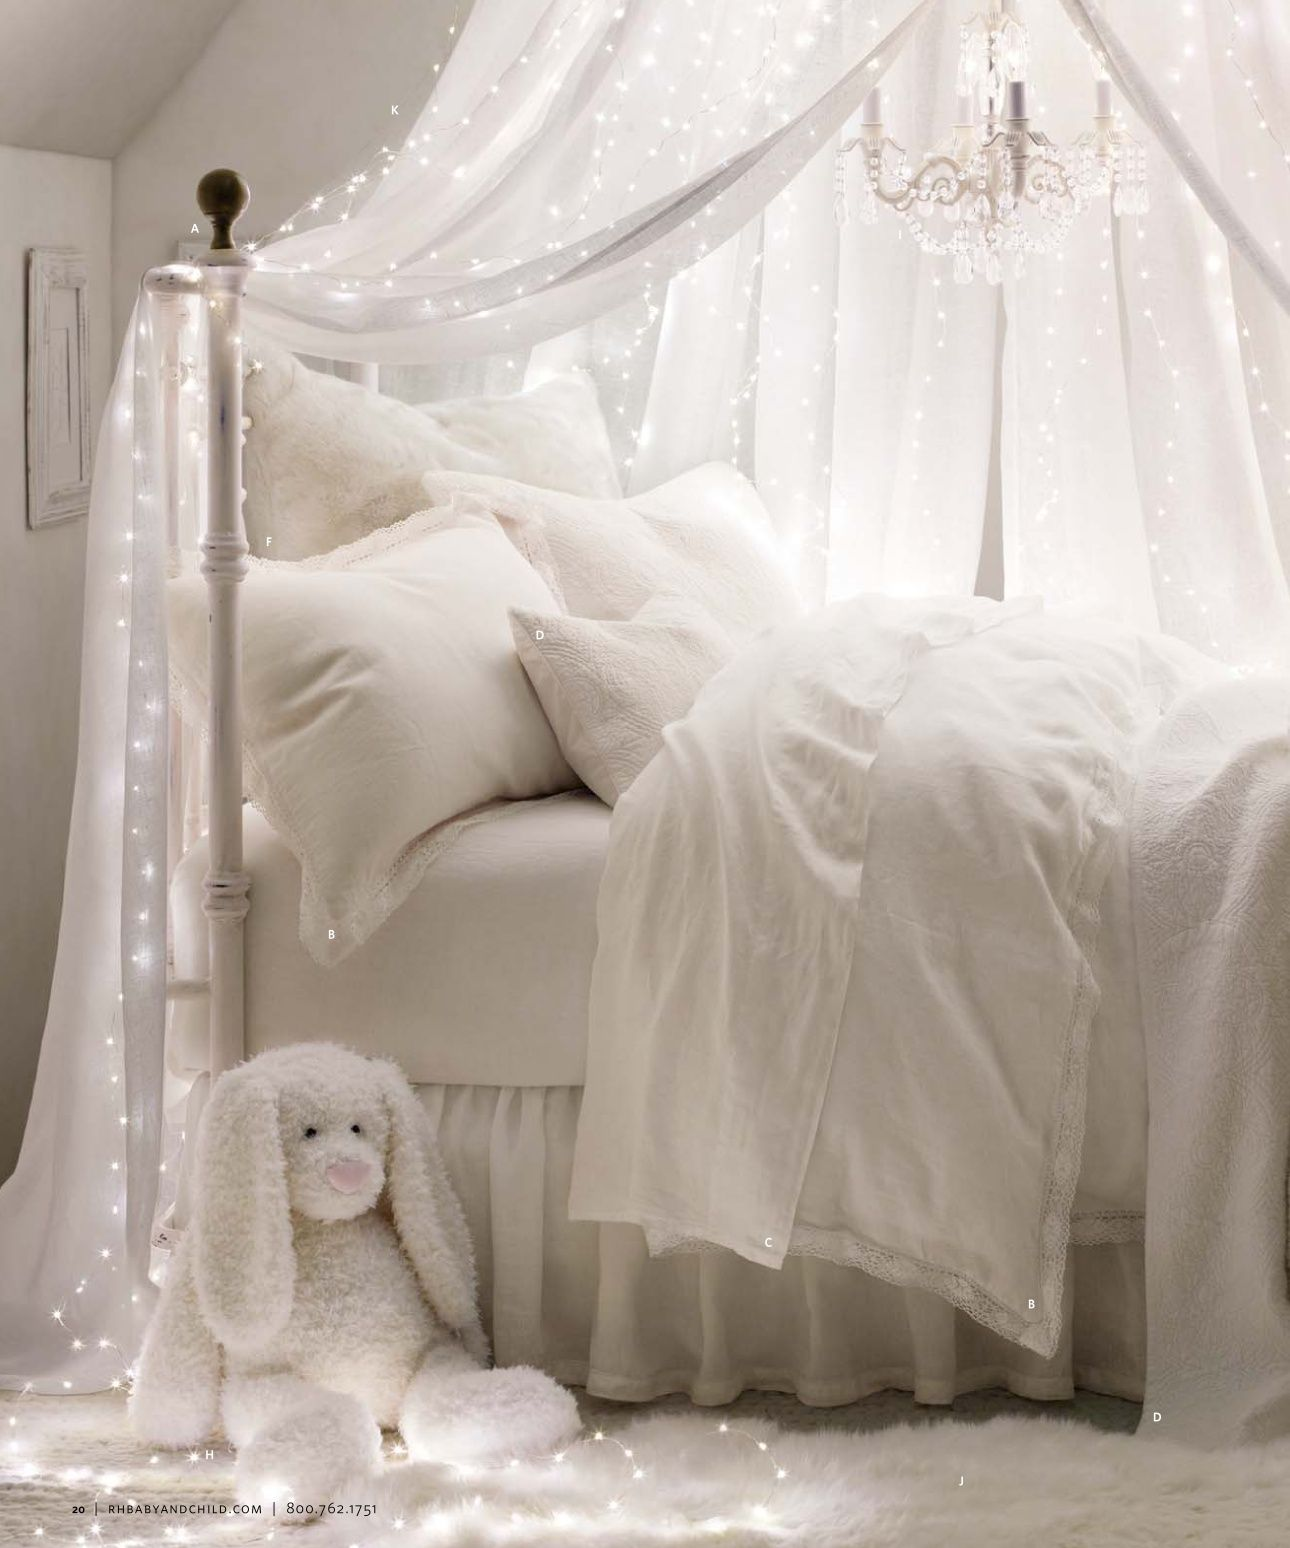 Girls Bedroom For The Holidays All White Bedding And Canopy With Twinkling Lights From Rh Bedroom Design Inspiration White Bedroom Design Dreamy Bedrooms